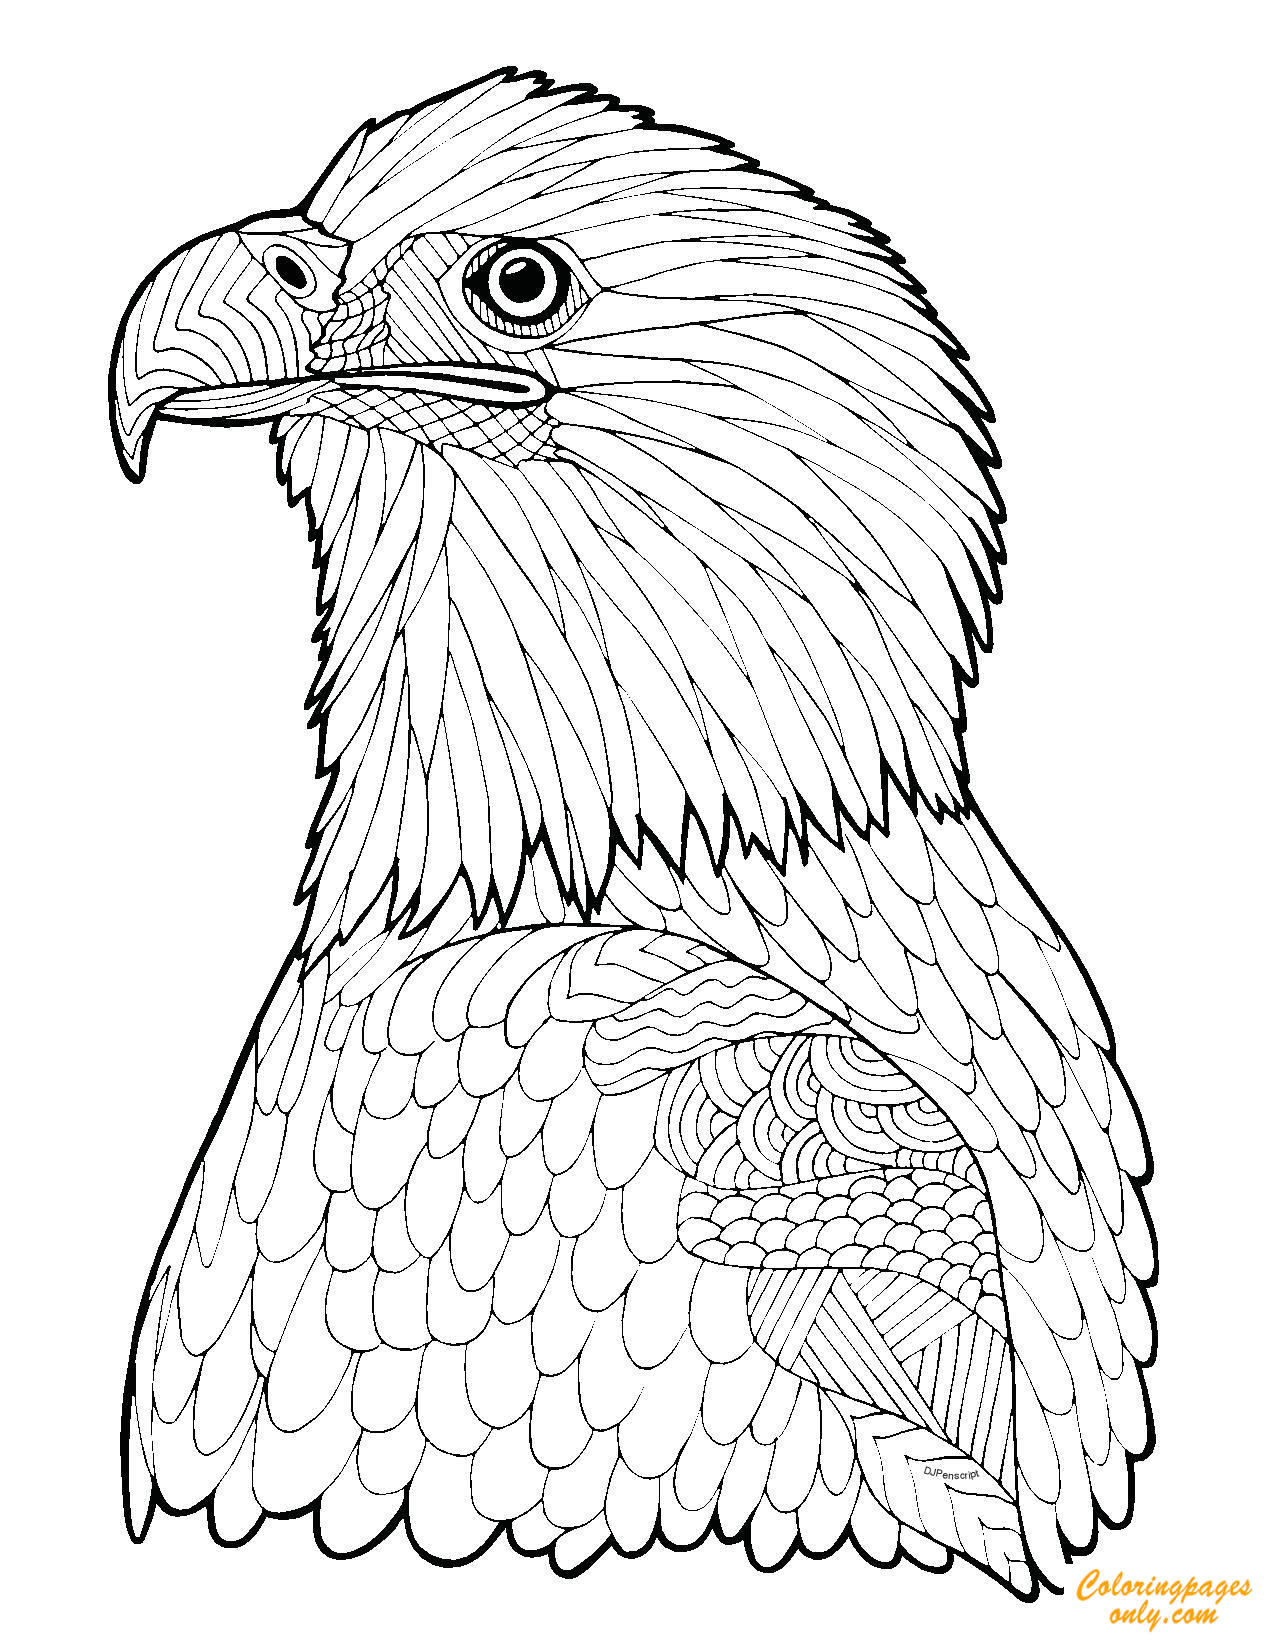 Zentangle Eagle Coloring Page